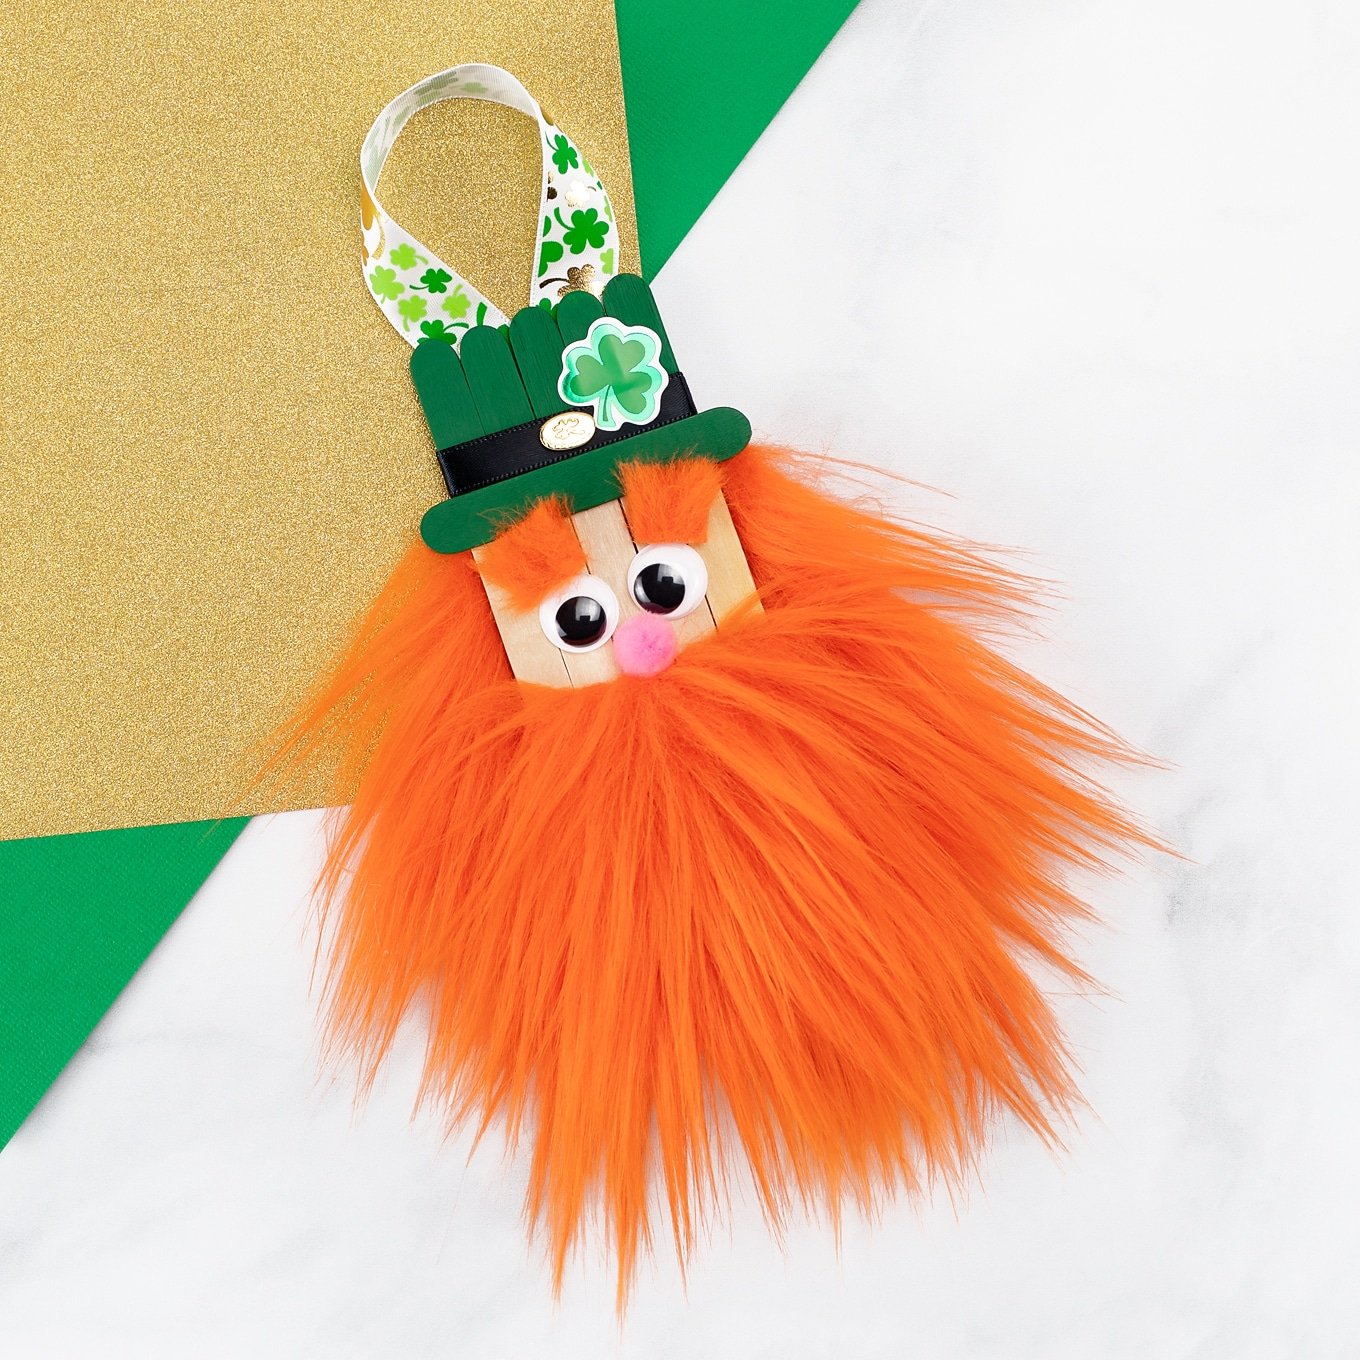 Popsicle Stick Leprechaun Ornament